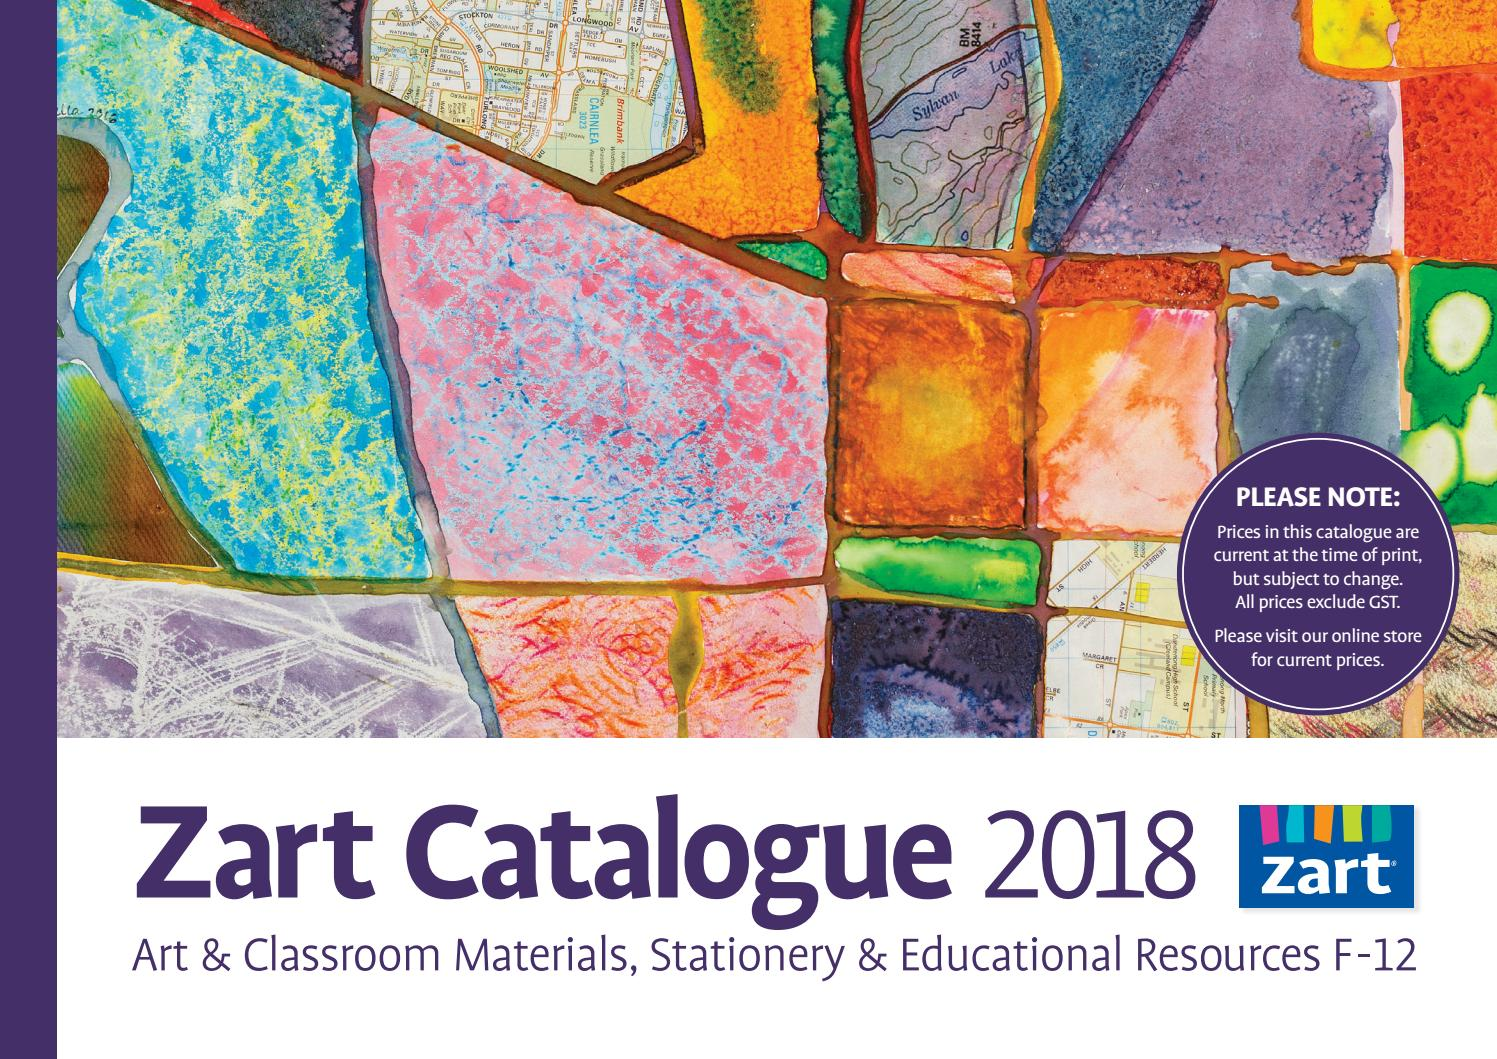 ac712f66f4faf Zart School Catalogue 2018 by Zart : Art, craft and education ...